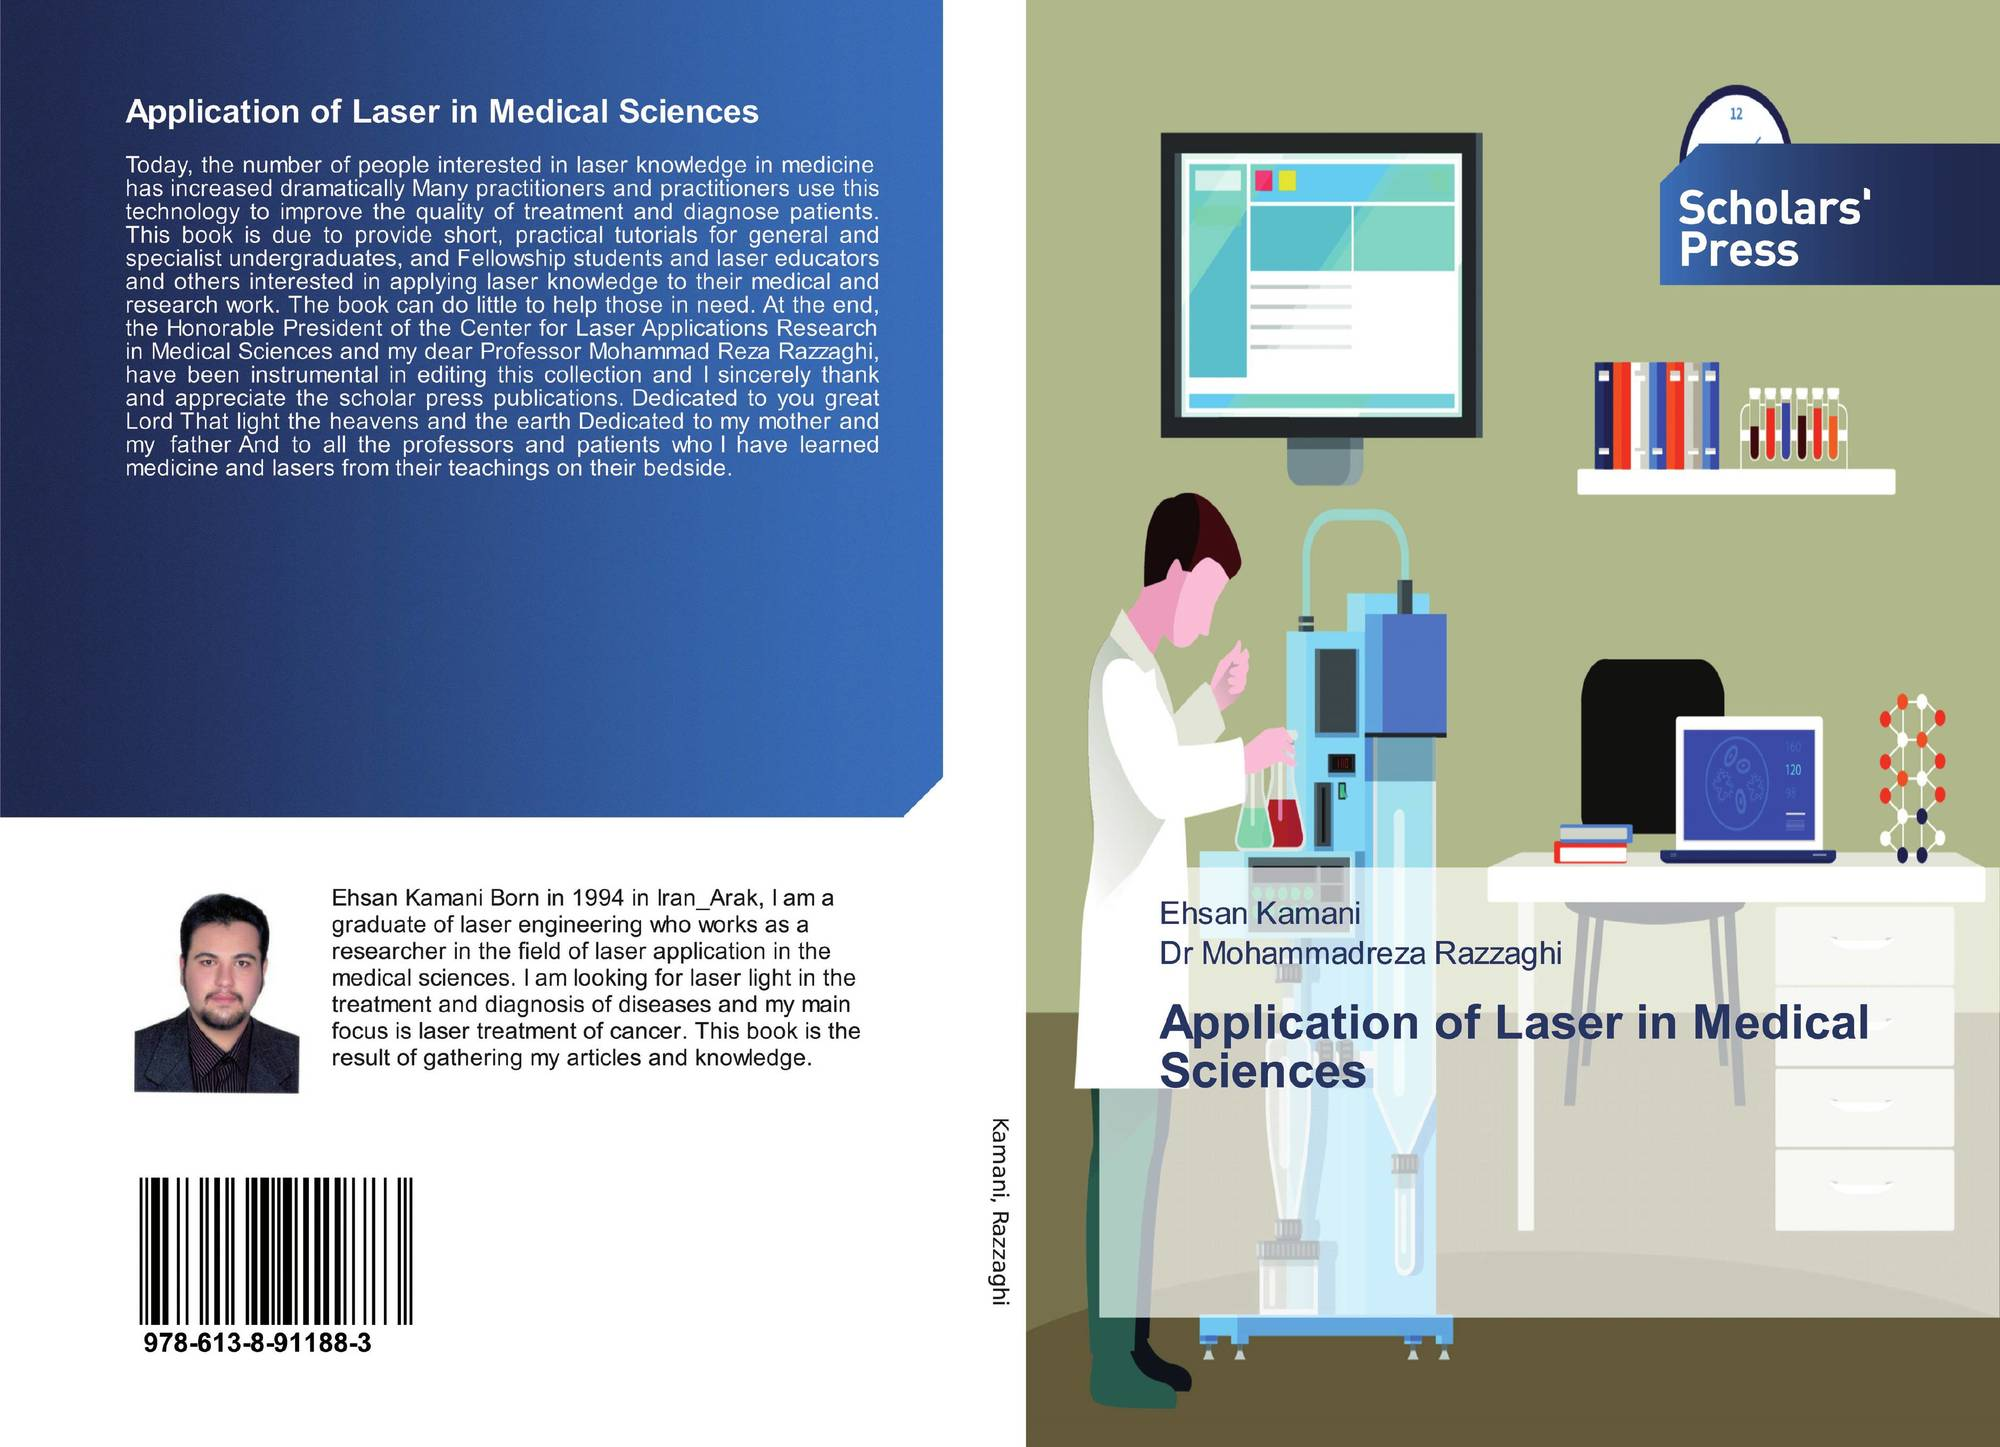 Application Of Laser In Medical Sciences 978 613 8 91188 3 6138911881 9786138911883 By Ehsan Kamani Dr Mohammadreza Razzaghi